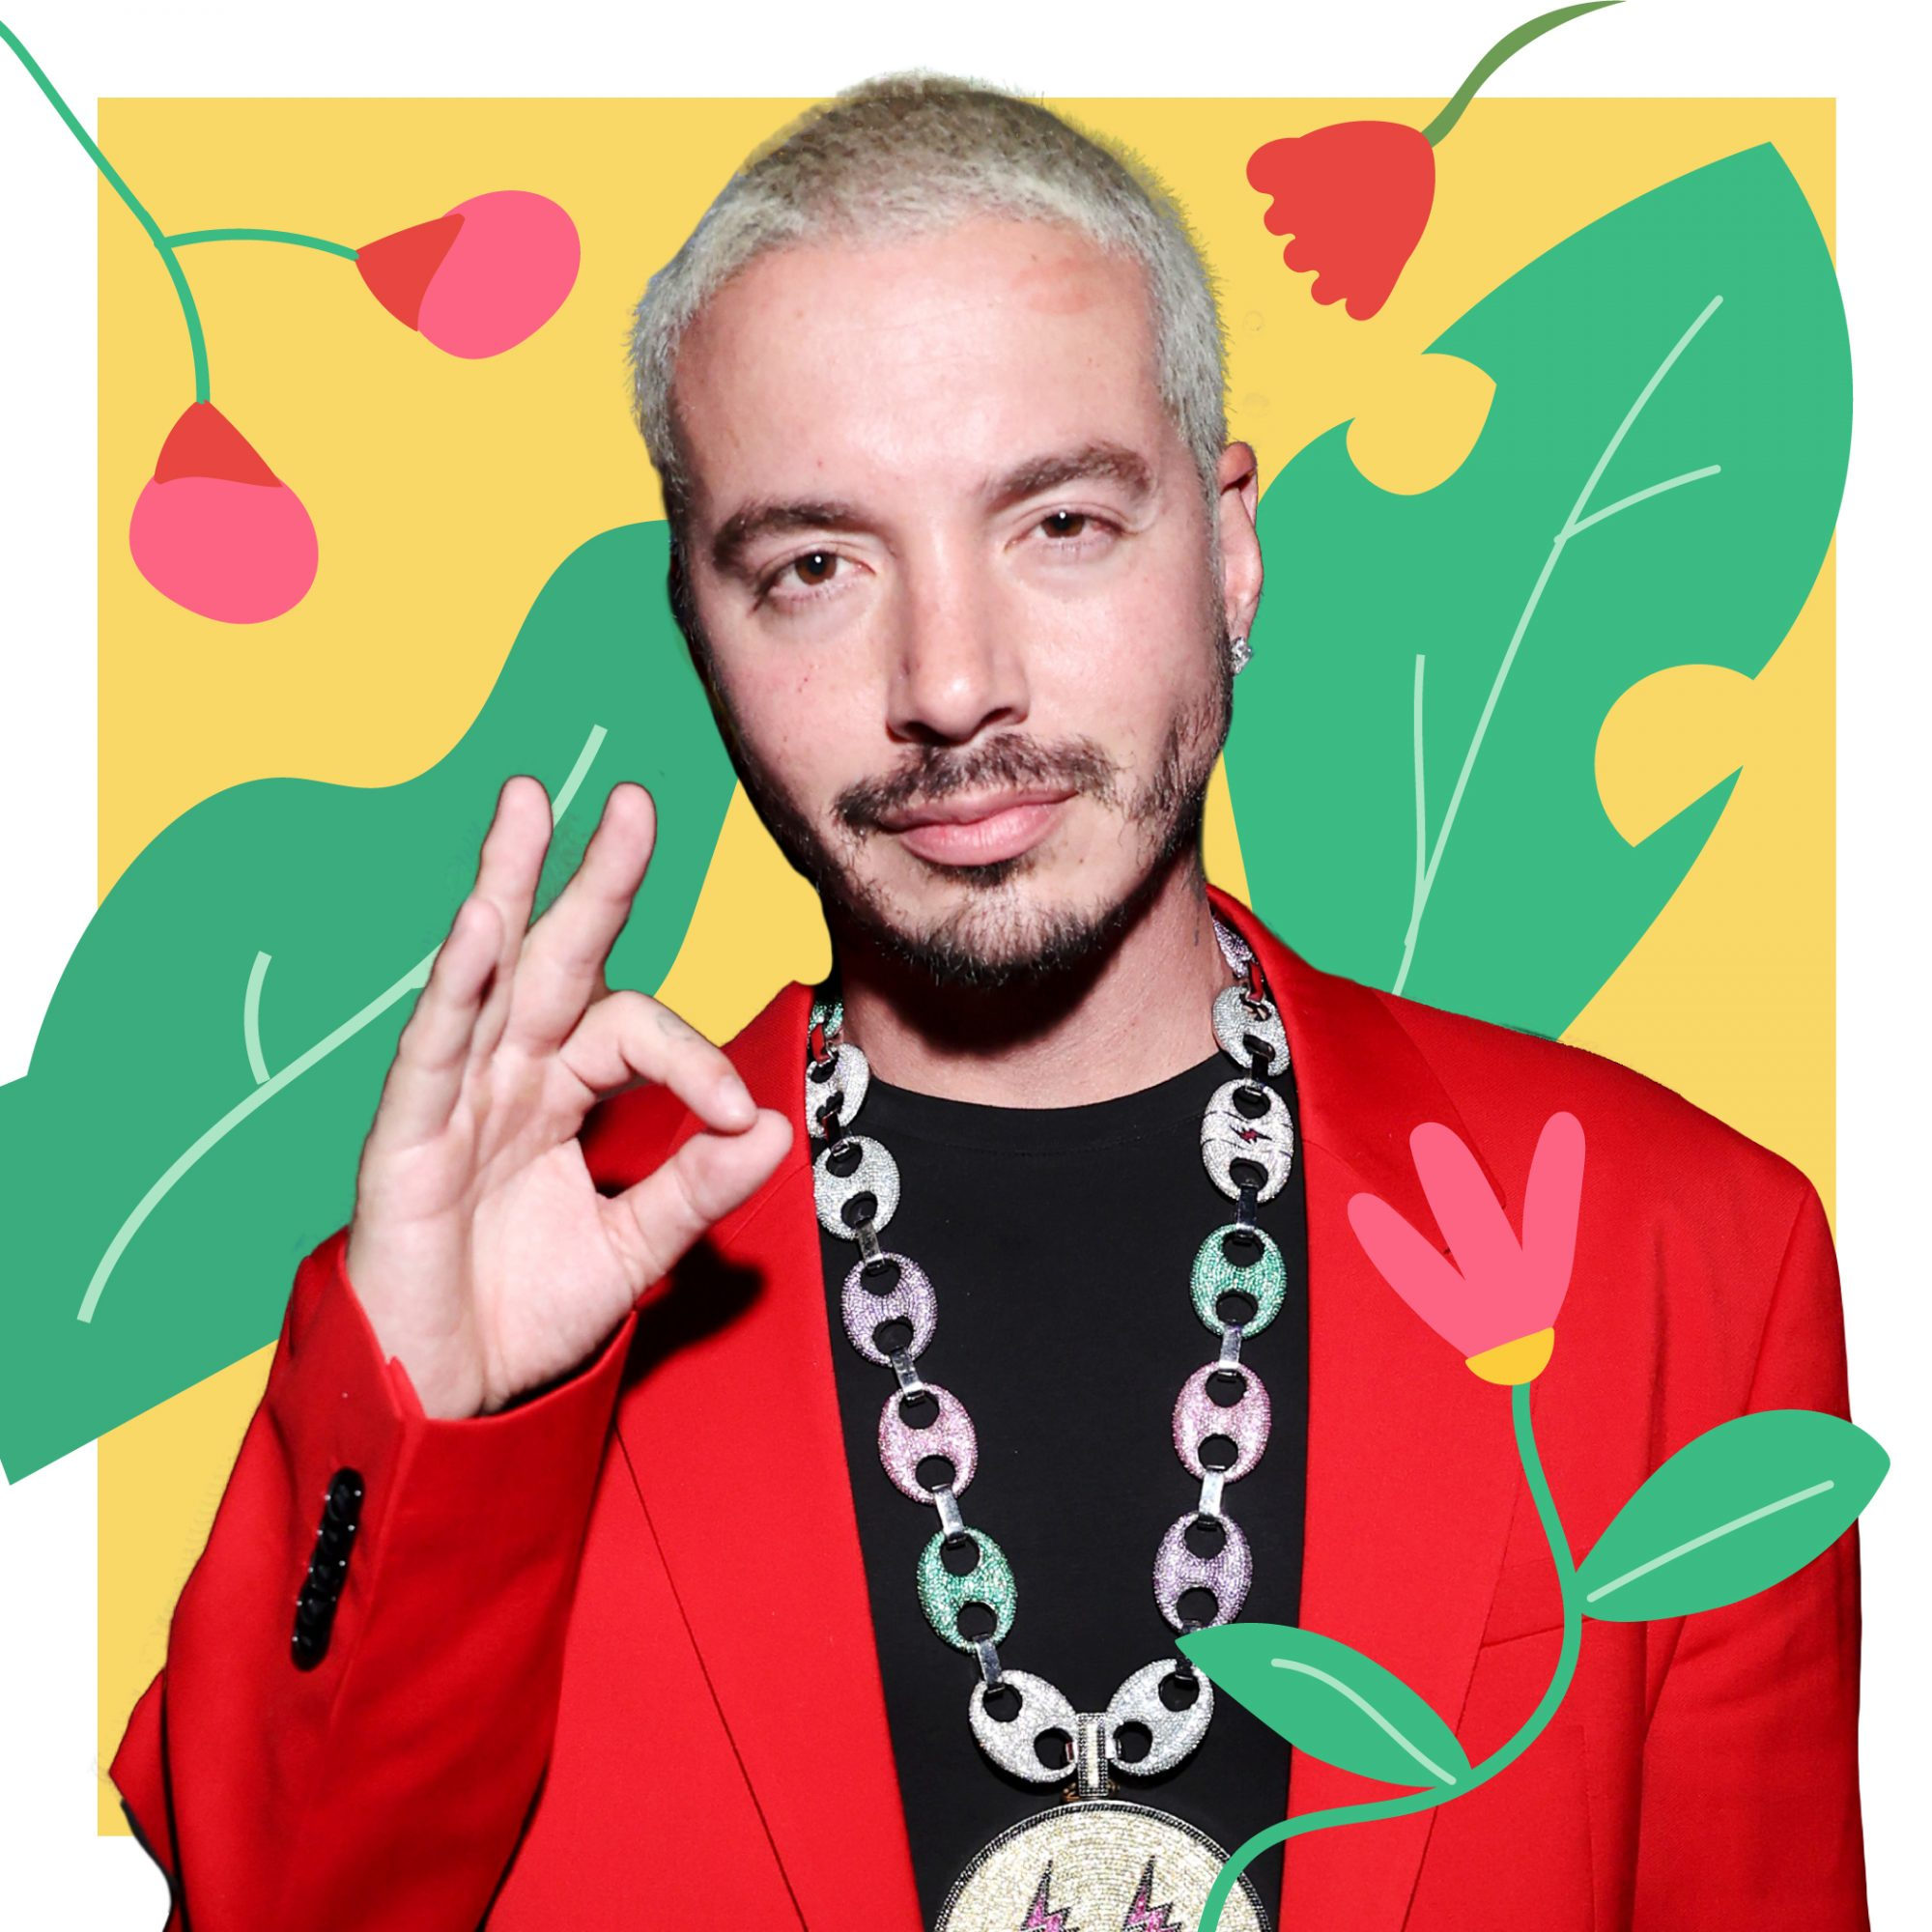 Real Simple Celebrities Who Practice Mindfulness: J Balvin